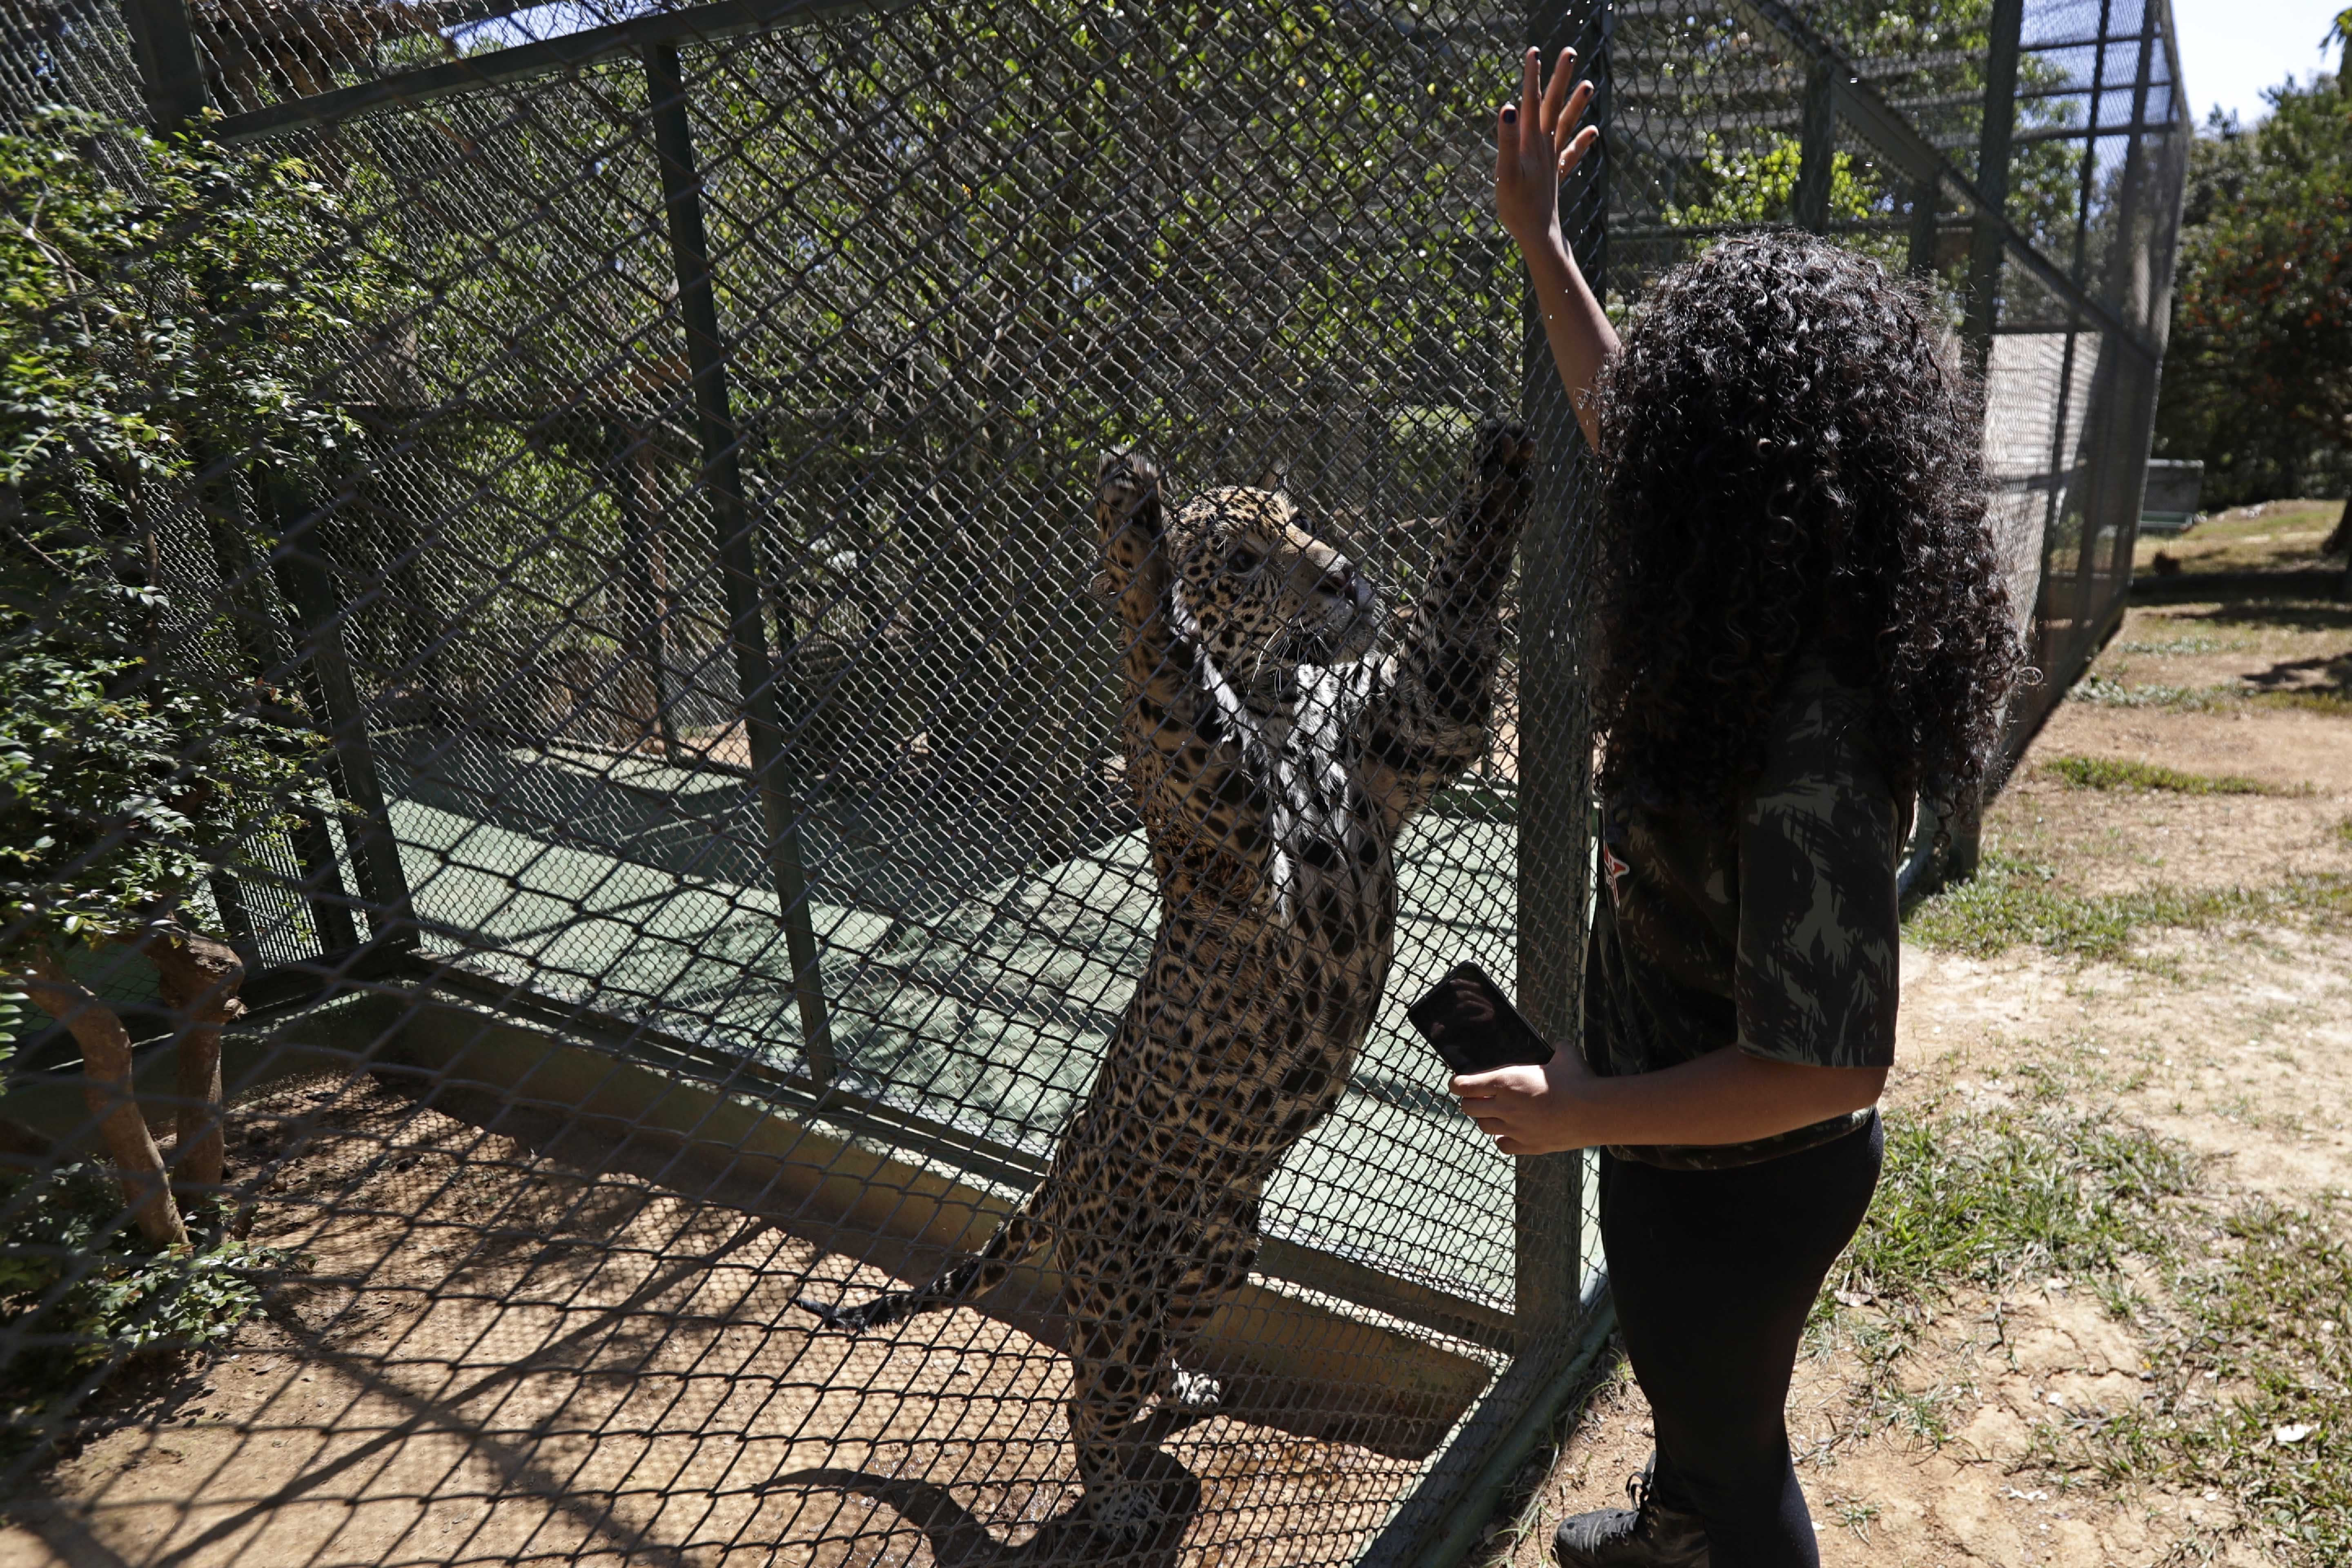 A veterinarian interacts with Jaguar named Guarani, in an integration environment at the headquarters of Nex Felinos, an NGO aimed at defending endangered wild cats, in the city of Corumba, Goias state, Brazil, Sunday, Sept. 27, 2020. Two Jaguars, a male and a female, were rescued from the great Pantanal fire and are receiving treatment with laser, ozone therapies and cell injections to hasten recovery of burned tissue. (AP Photo/Eraldo Peres)